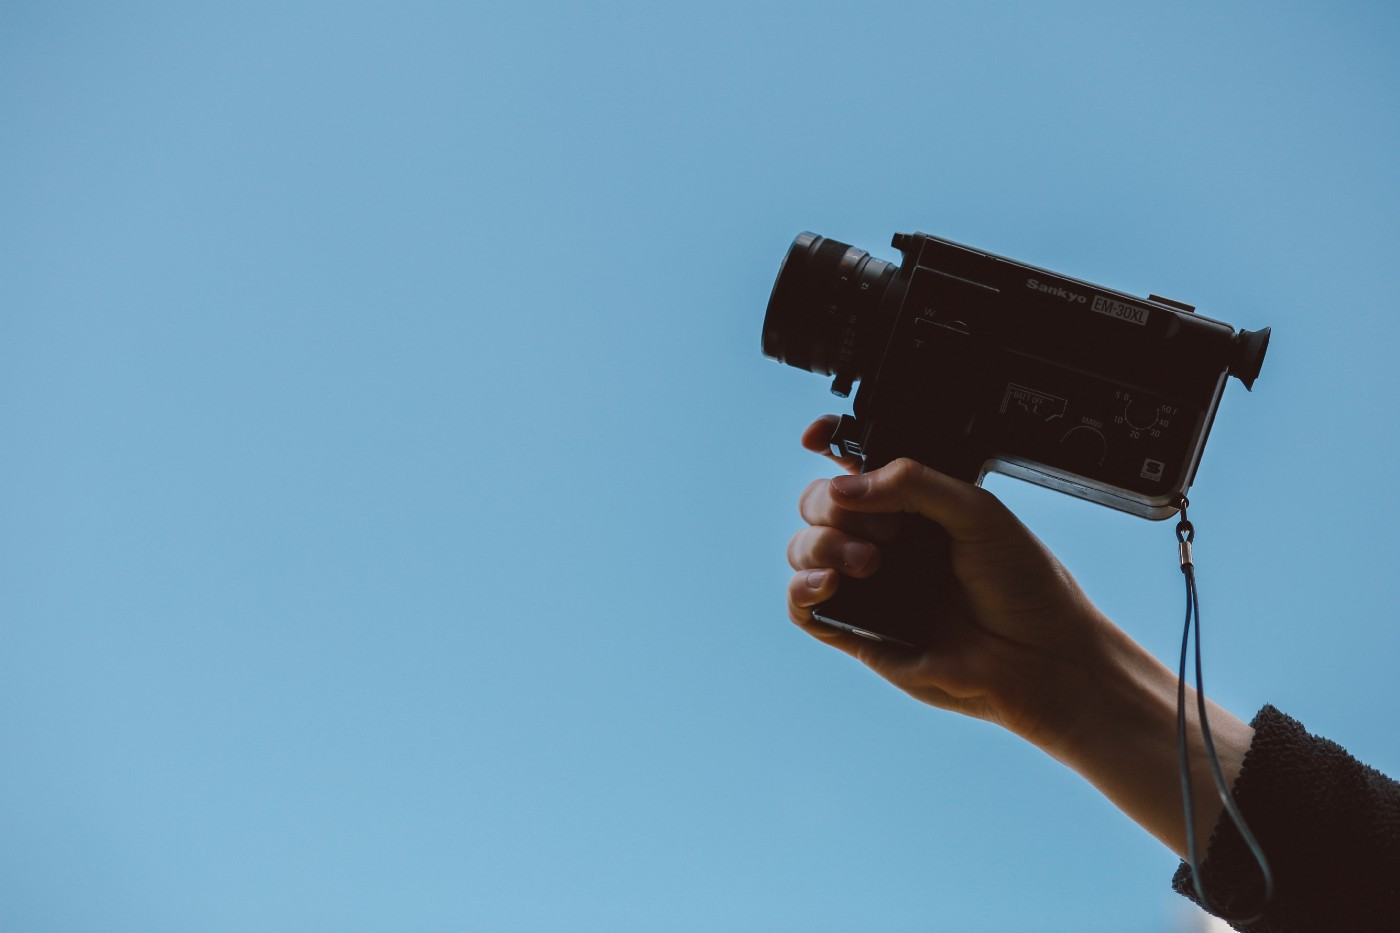 Person holding a video camera against a blue background